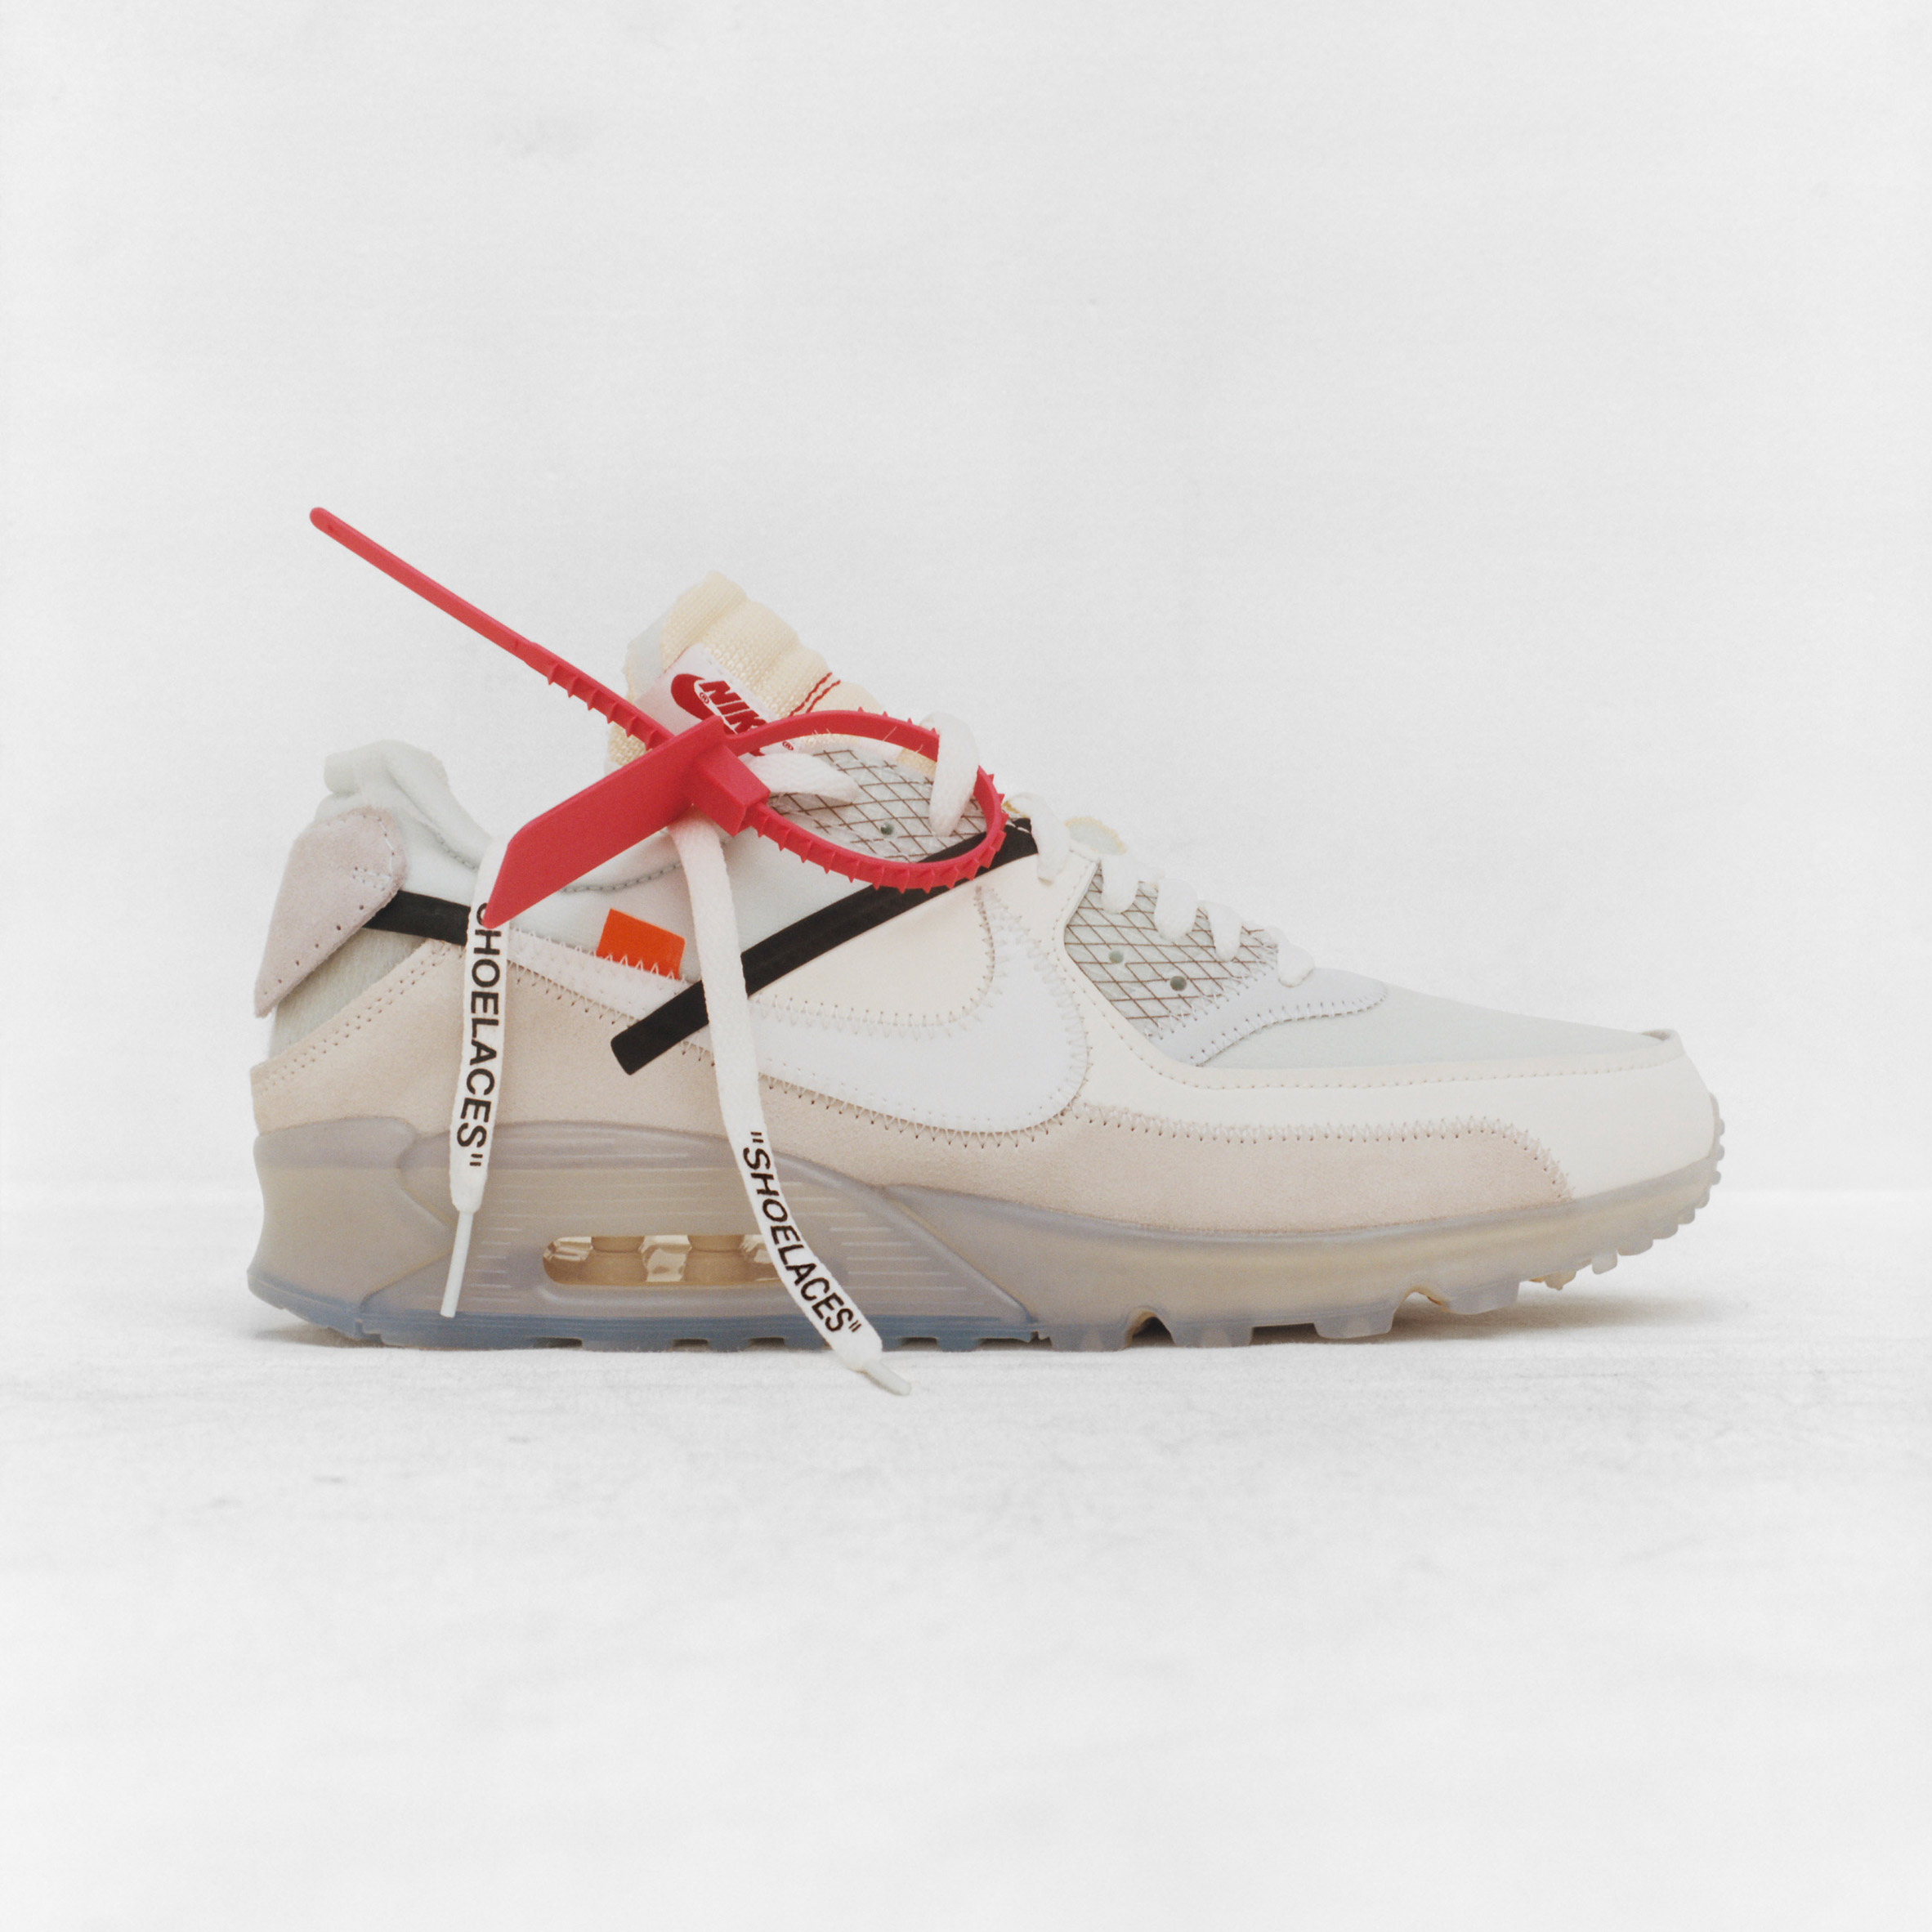 Virgil Abloh's The Ten collaboration with Nike